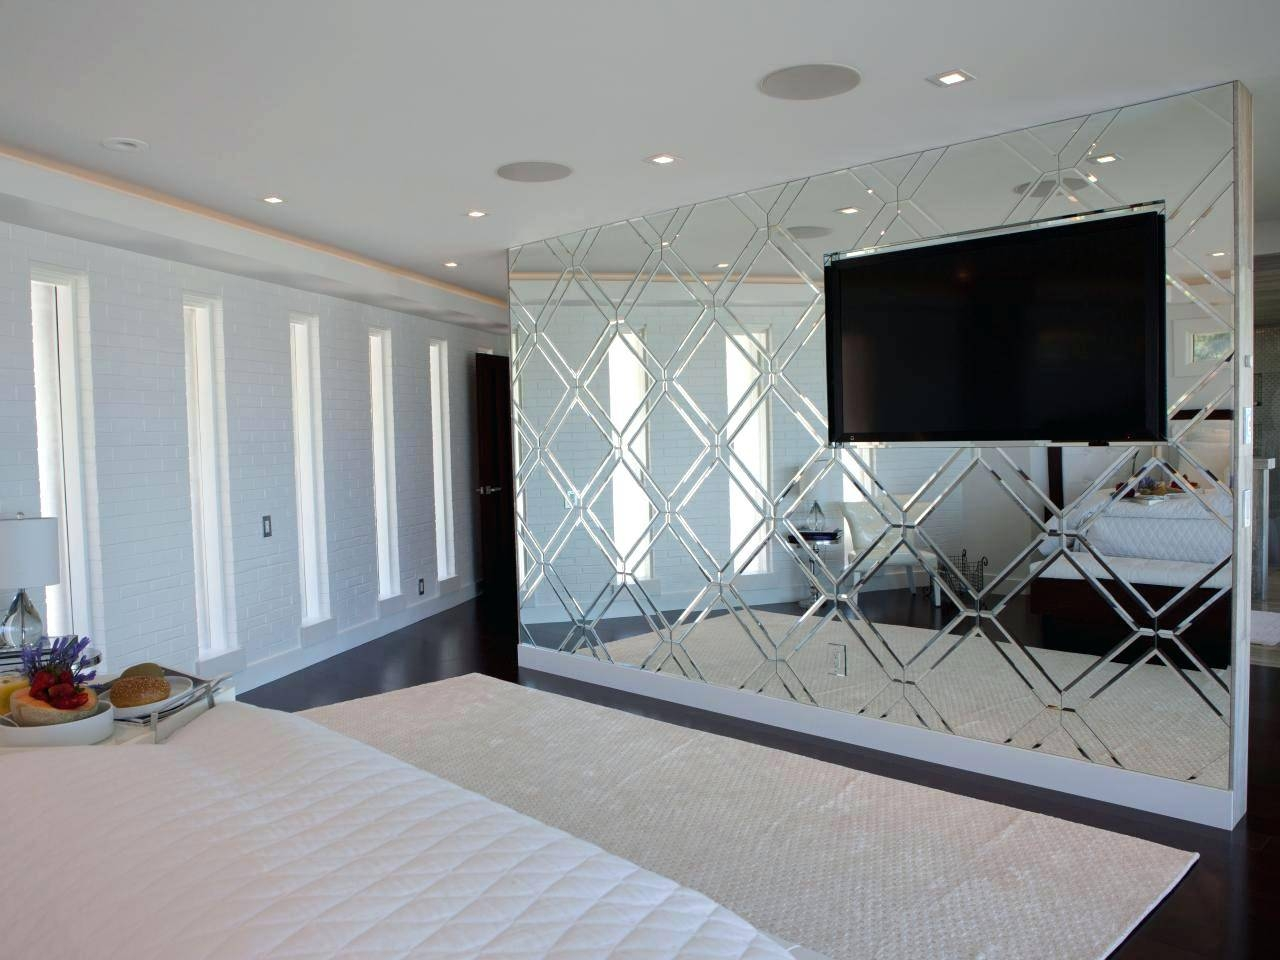 Our Gallery Of Imposing Decoration Bedroom Wall Mirrors Cozy Ideas with regard to Feature Wall Mirrors (Image 20 of 25)